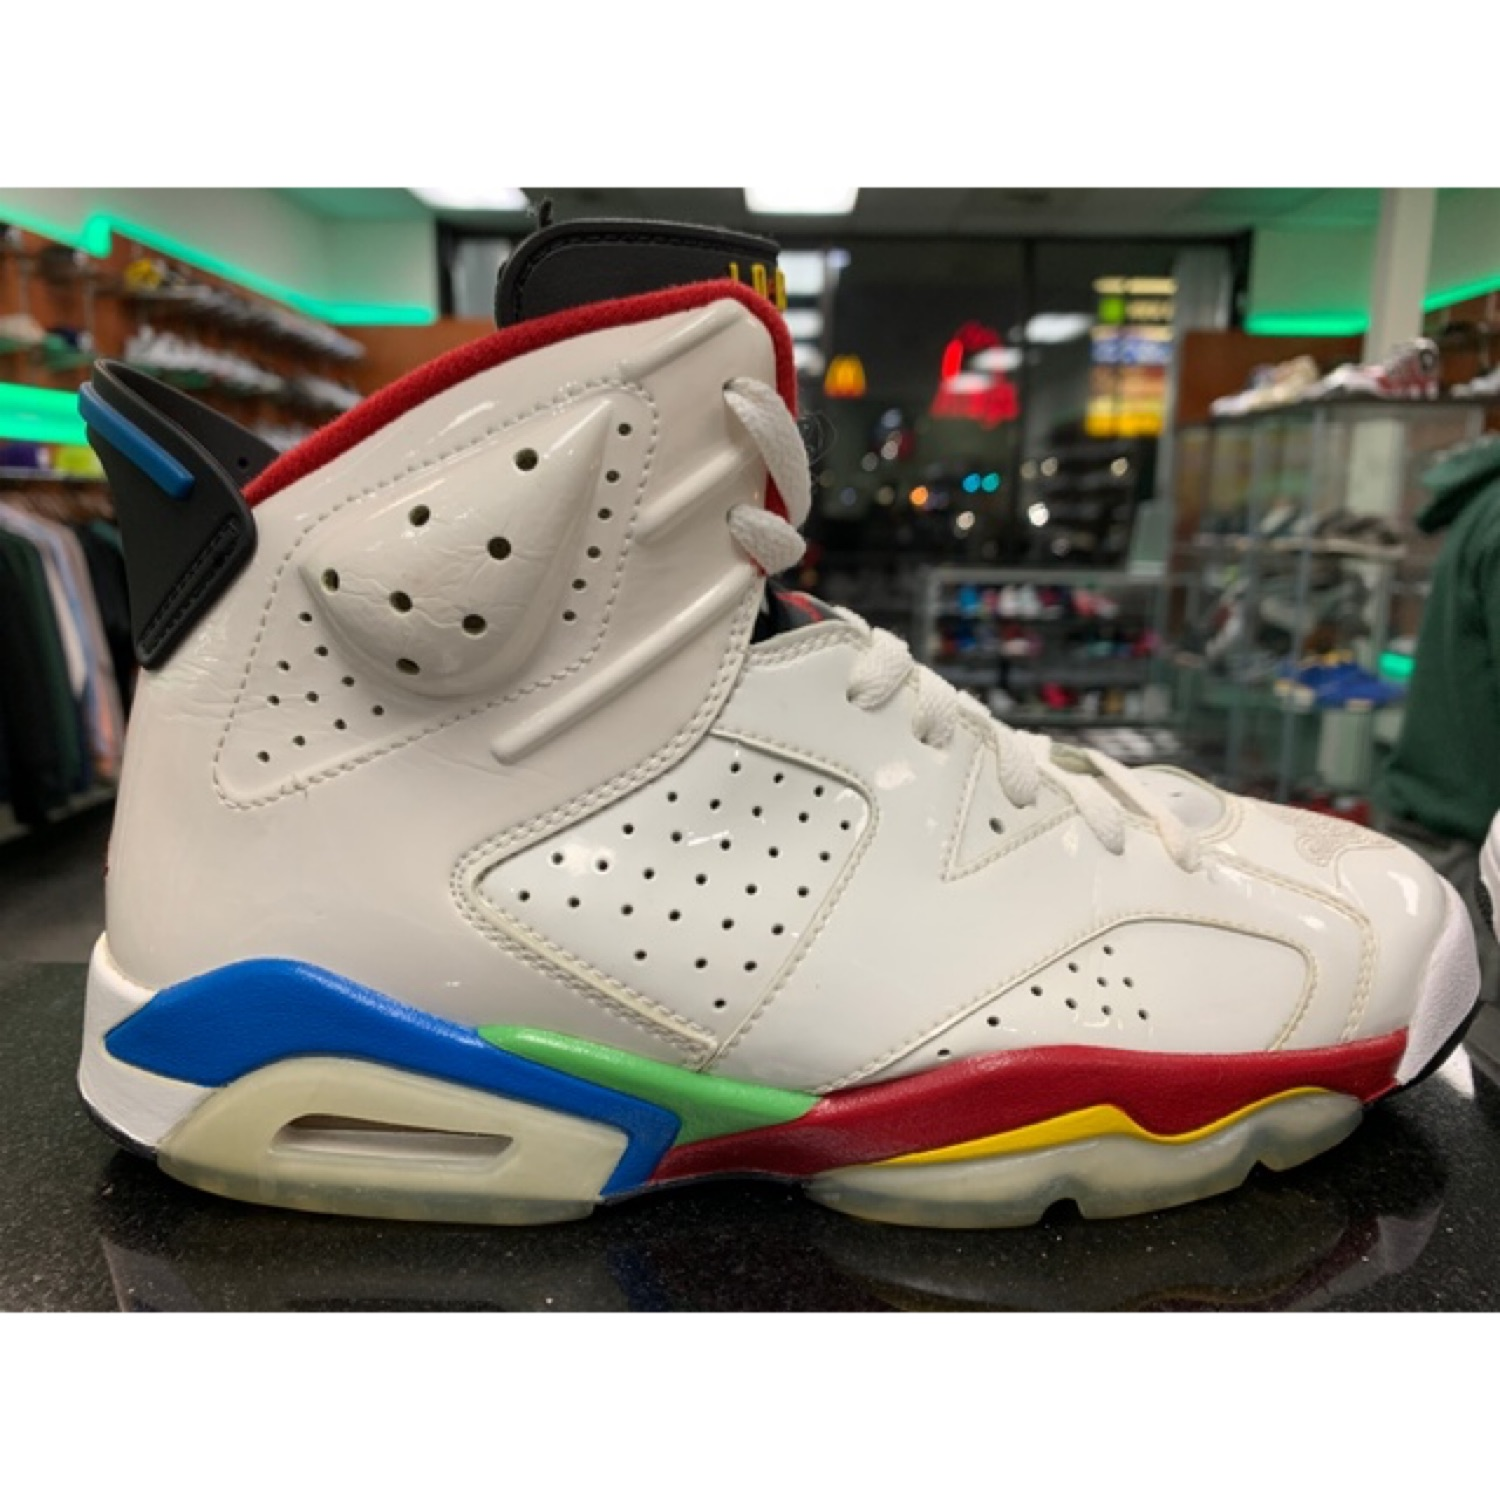 super popular 50da7 79dfd Nike Air Jordan 6 Olympic Beijing